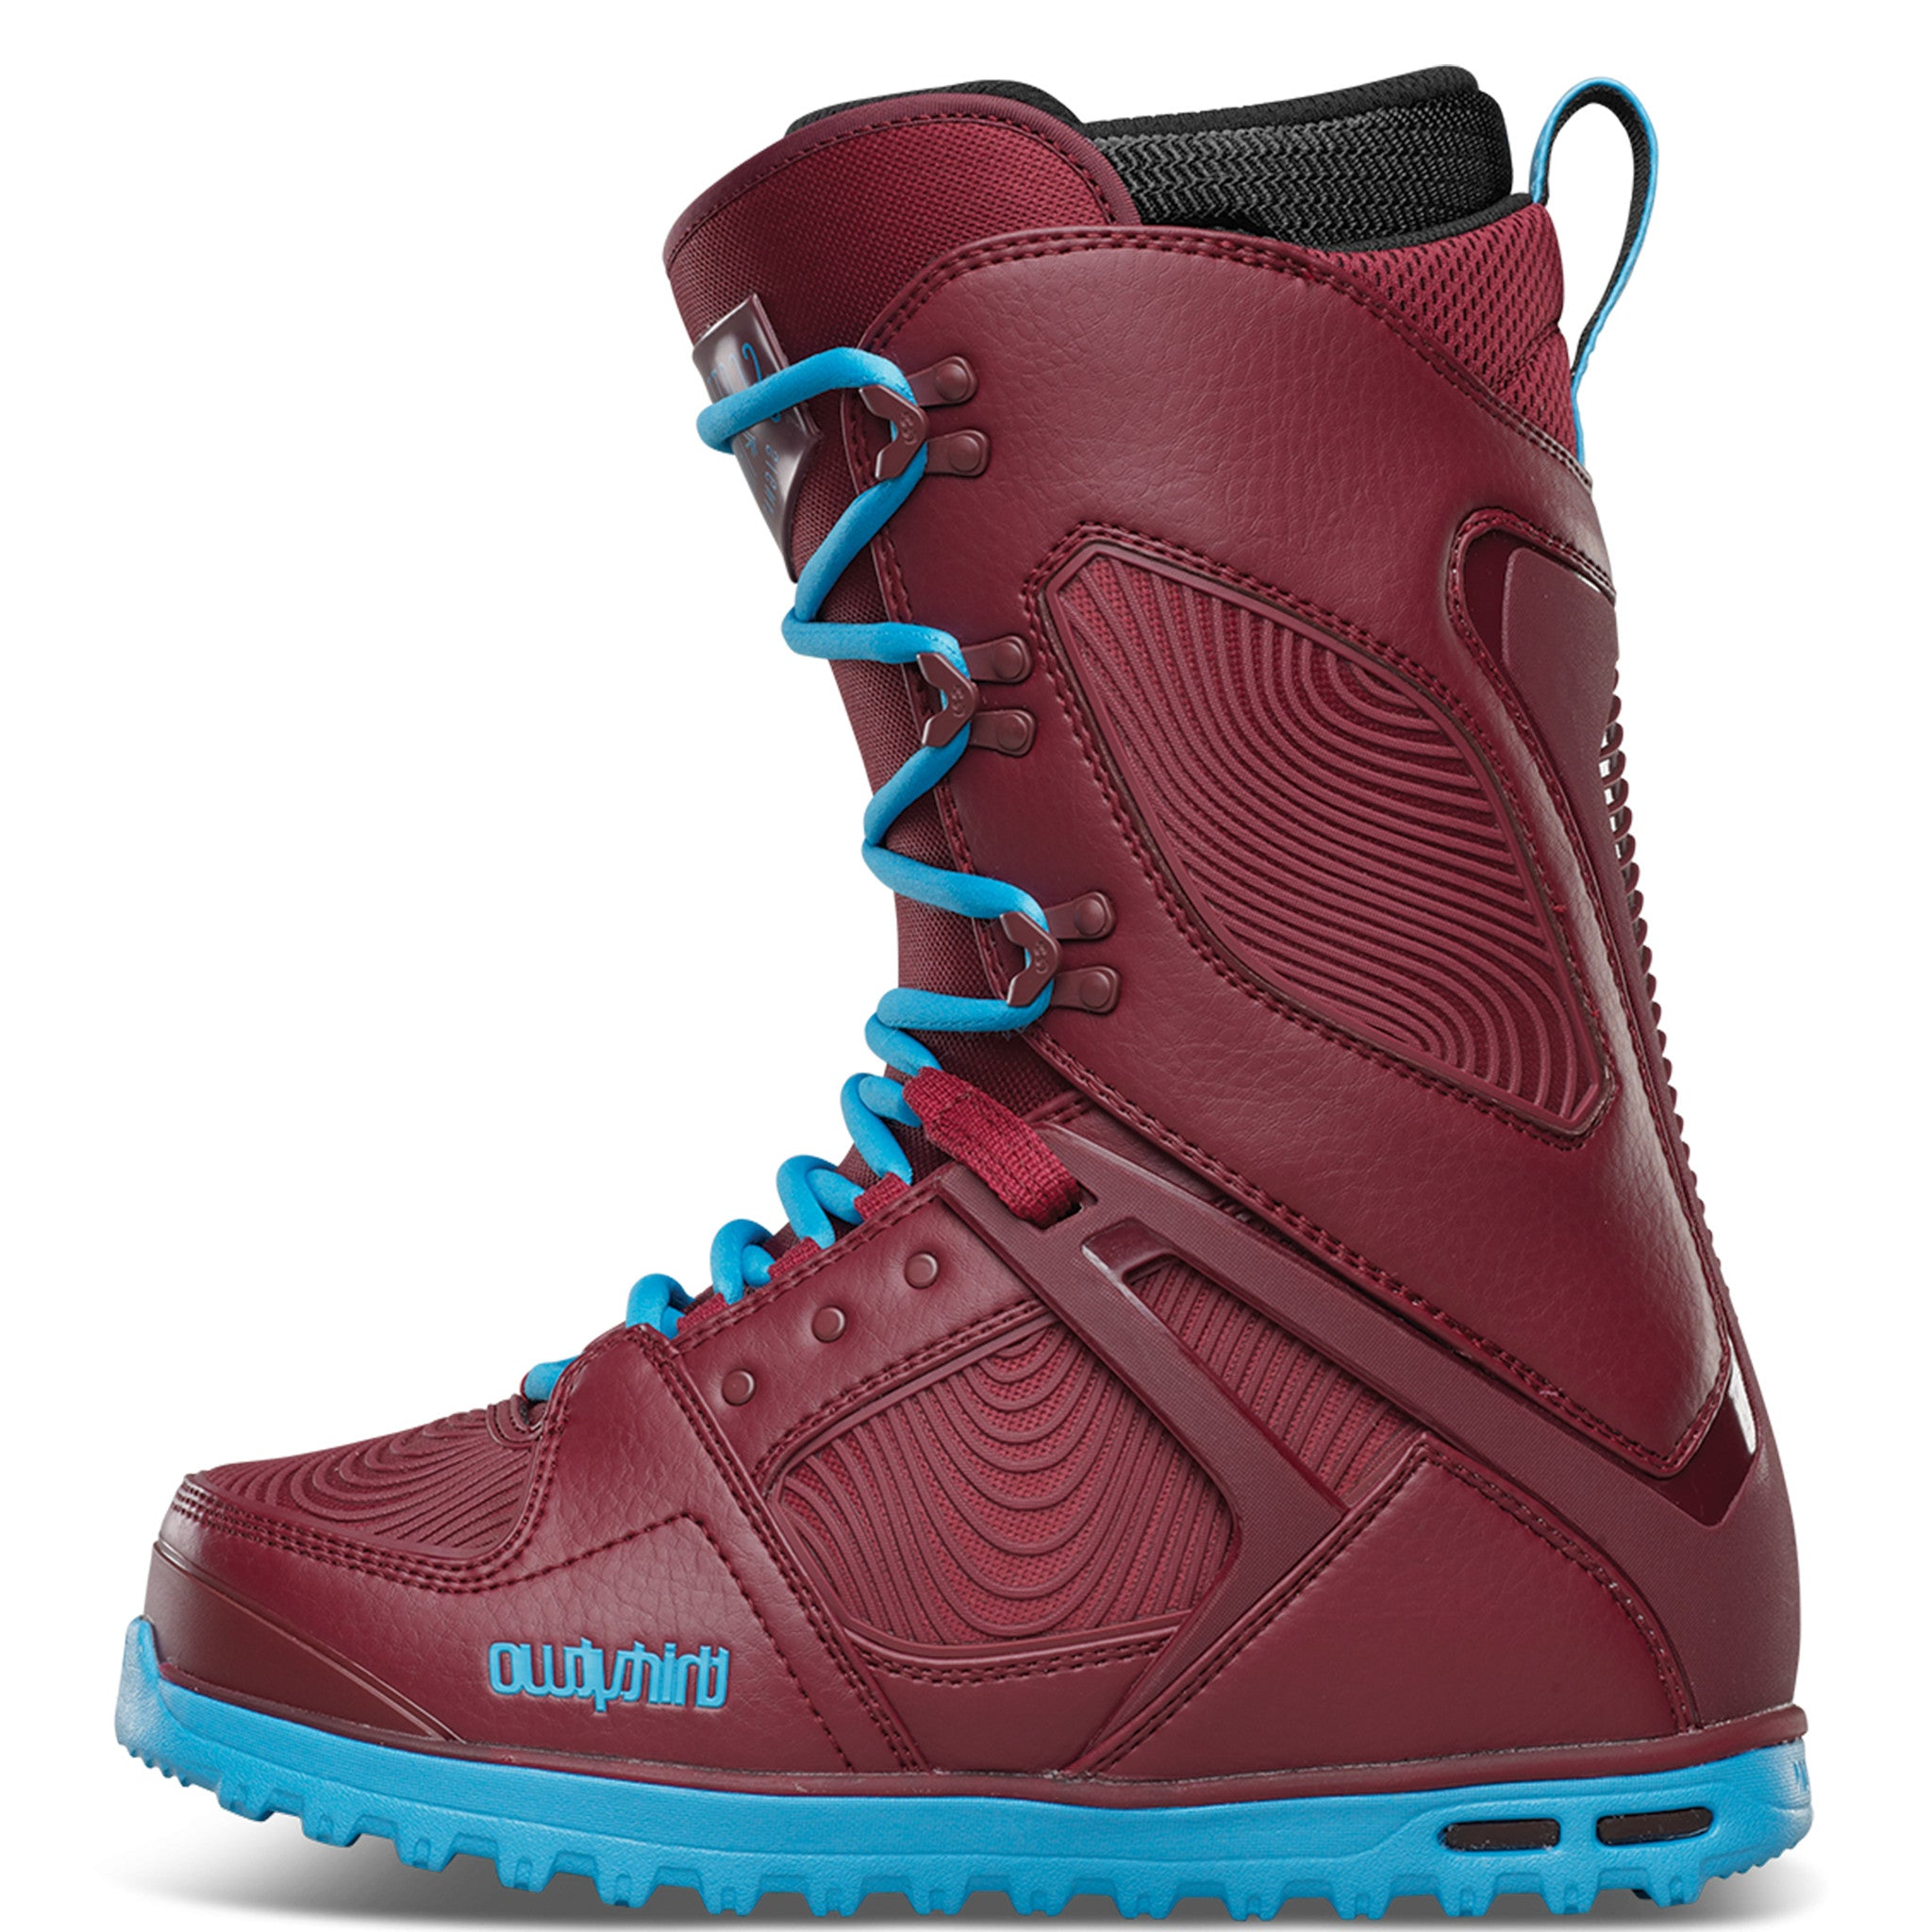 TM-Two Scott Stevens Maroon - Stoked Boardshop